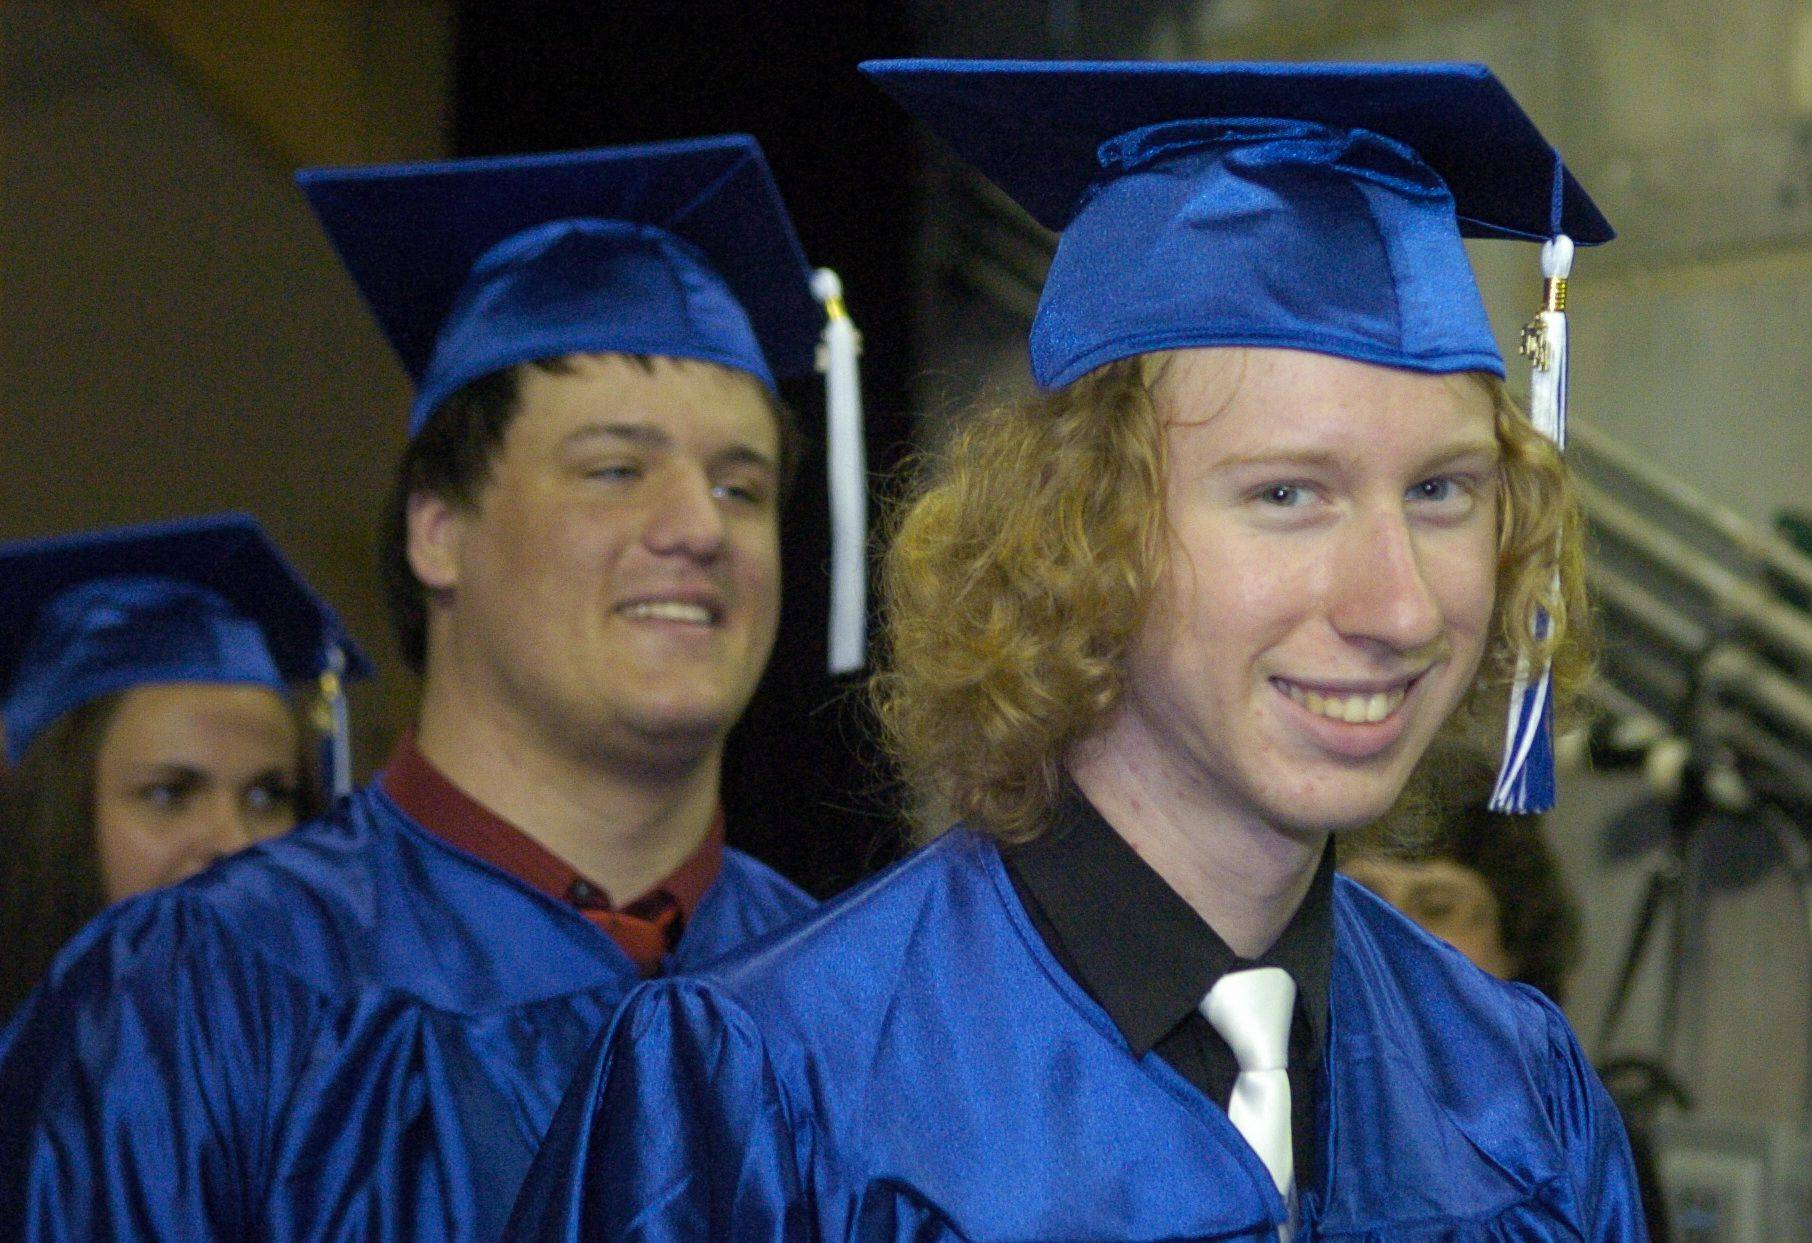 Images from the Larkin High School graduation Saturday, May 28, 2011.